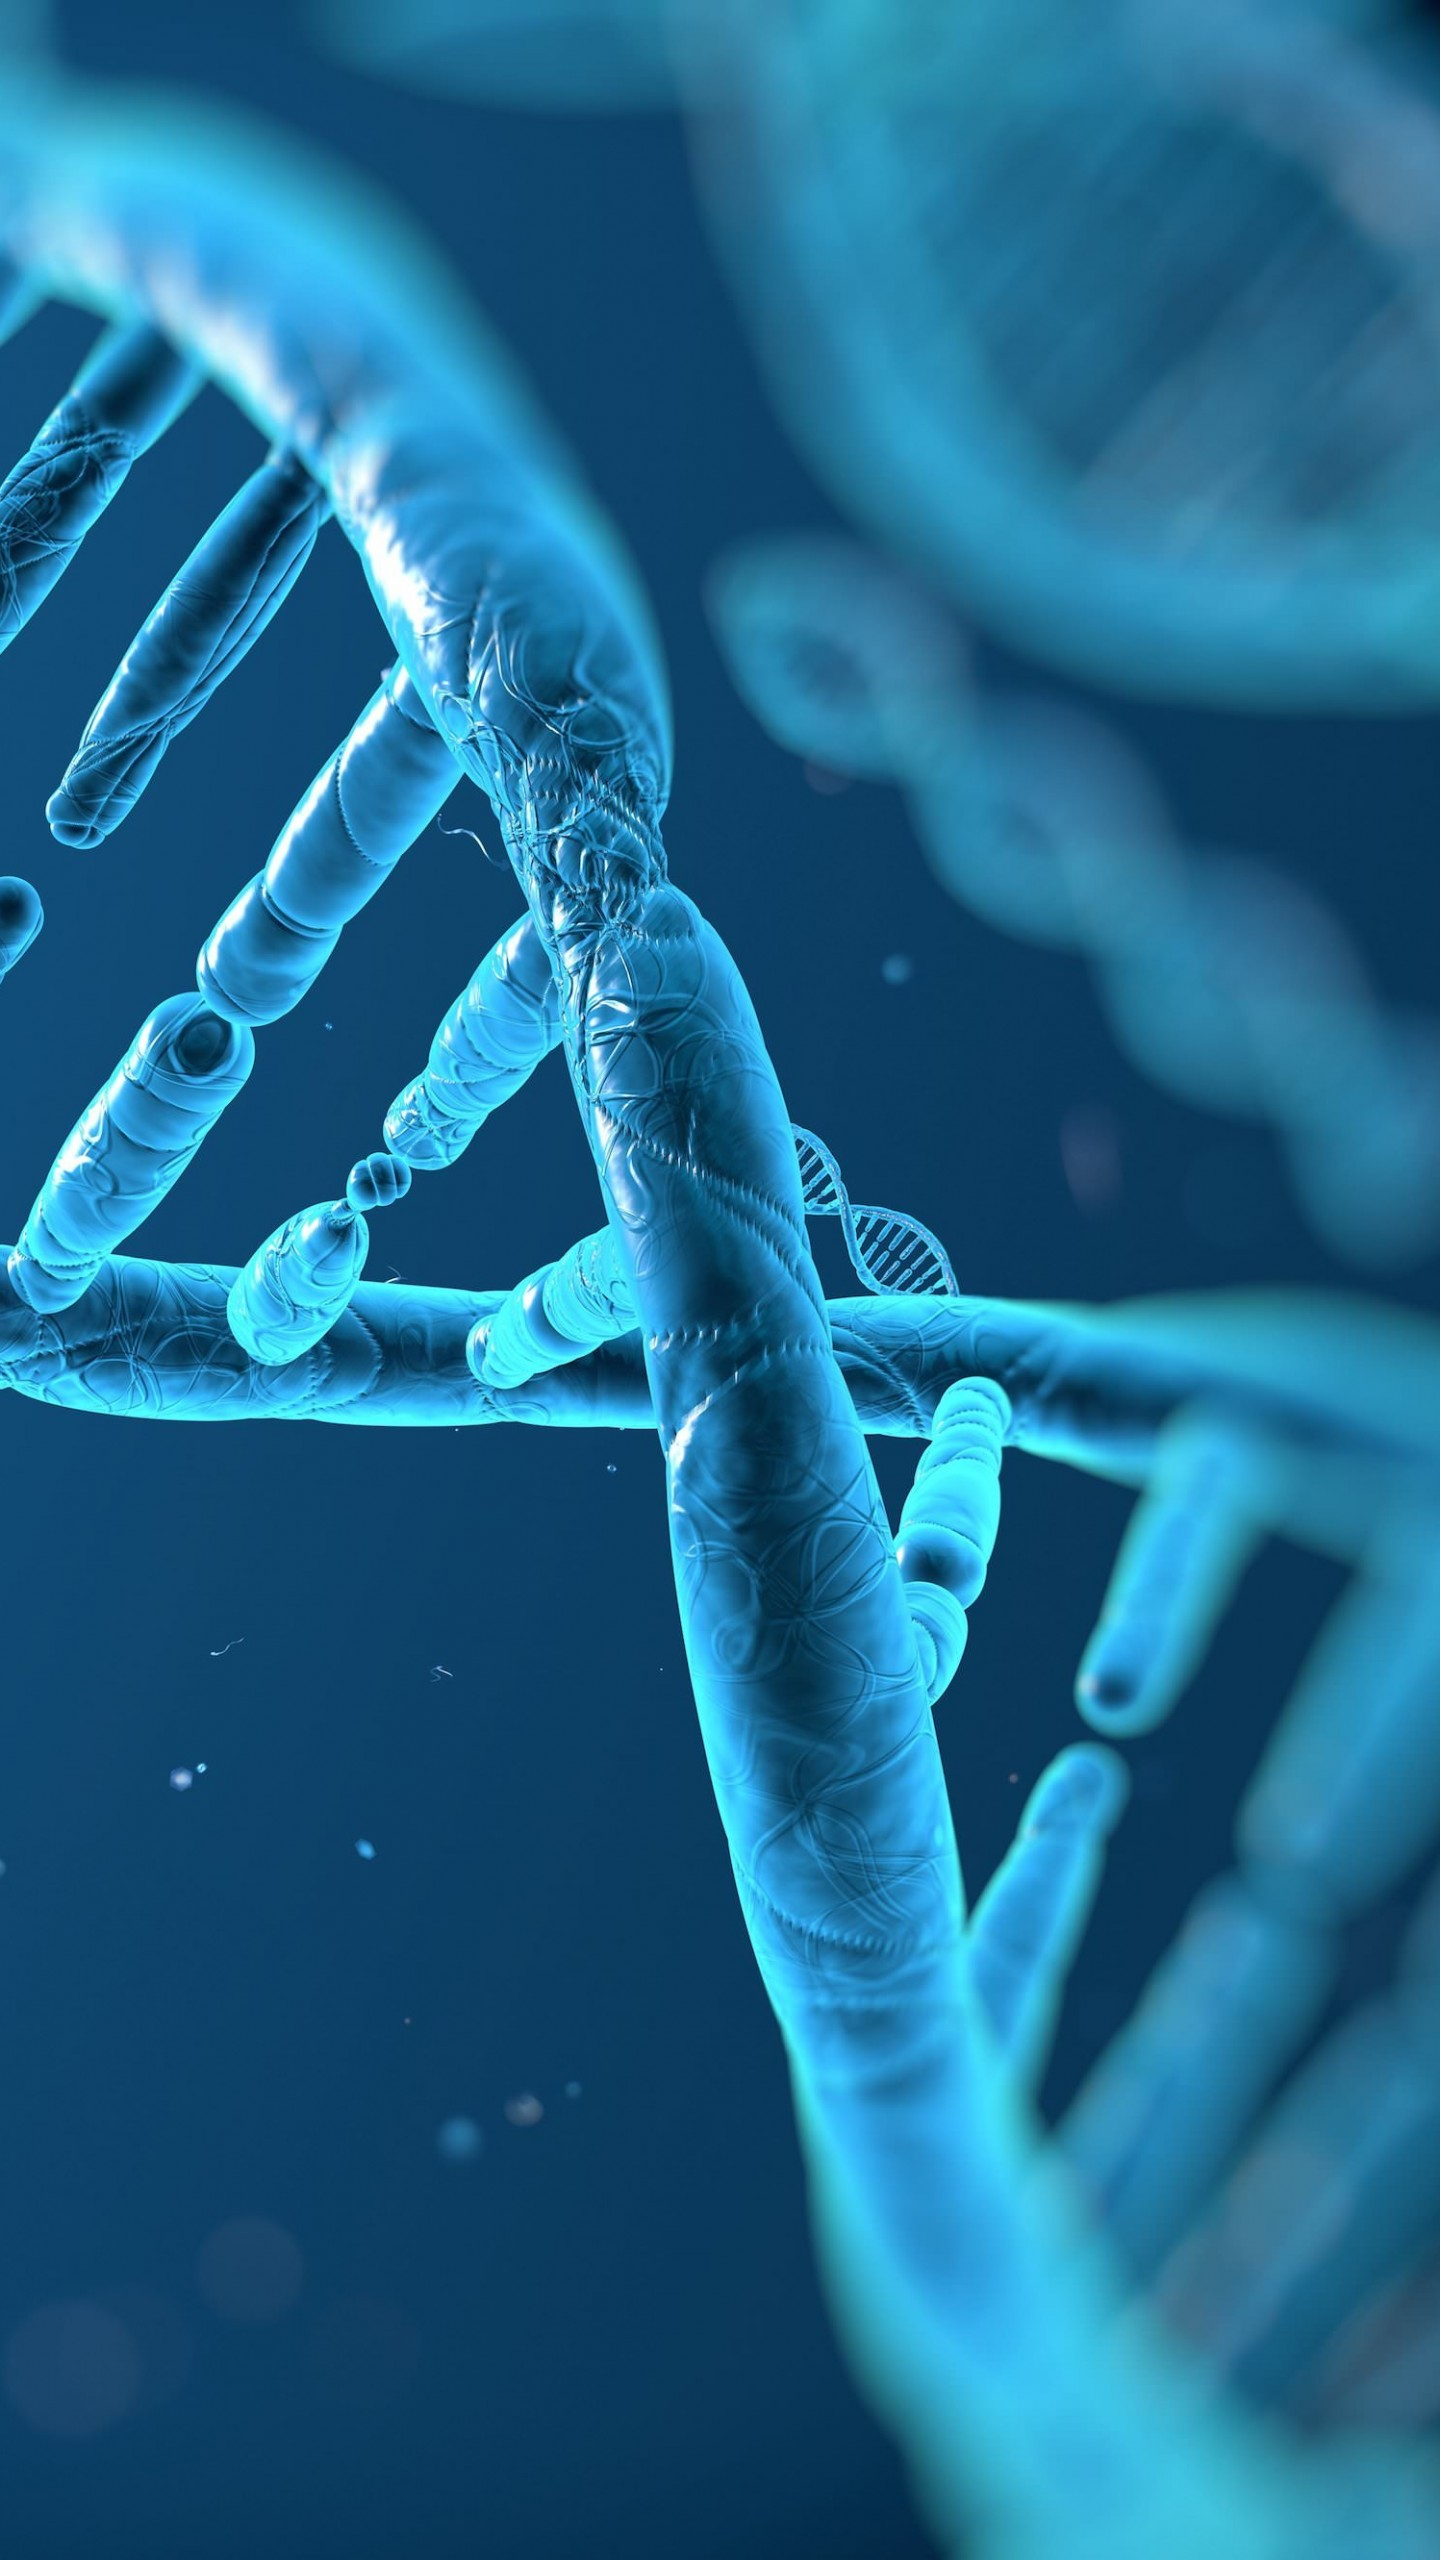 DNA Structure Wallpaper for LG G3